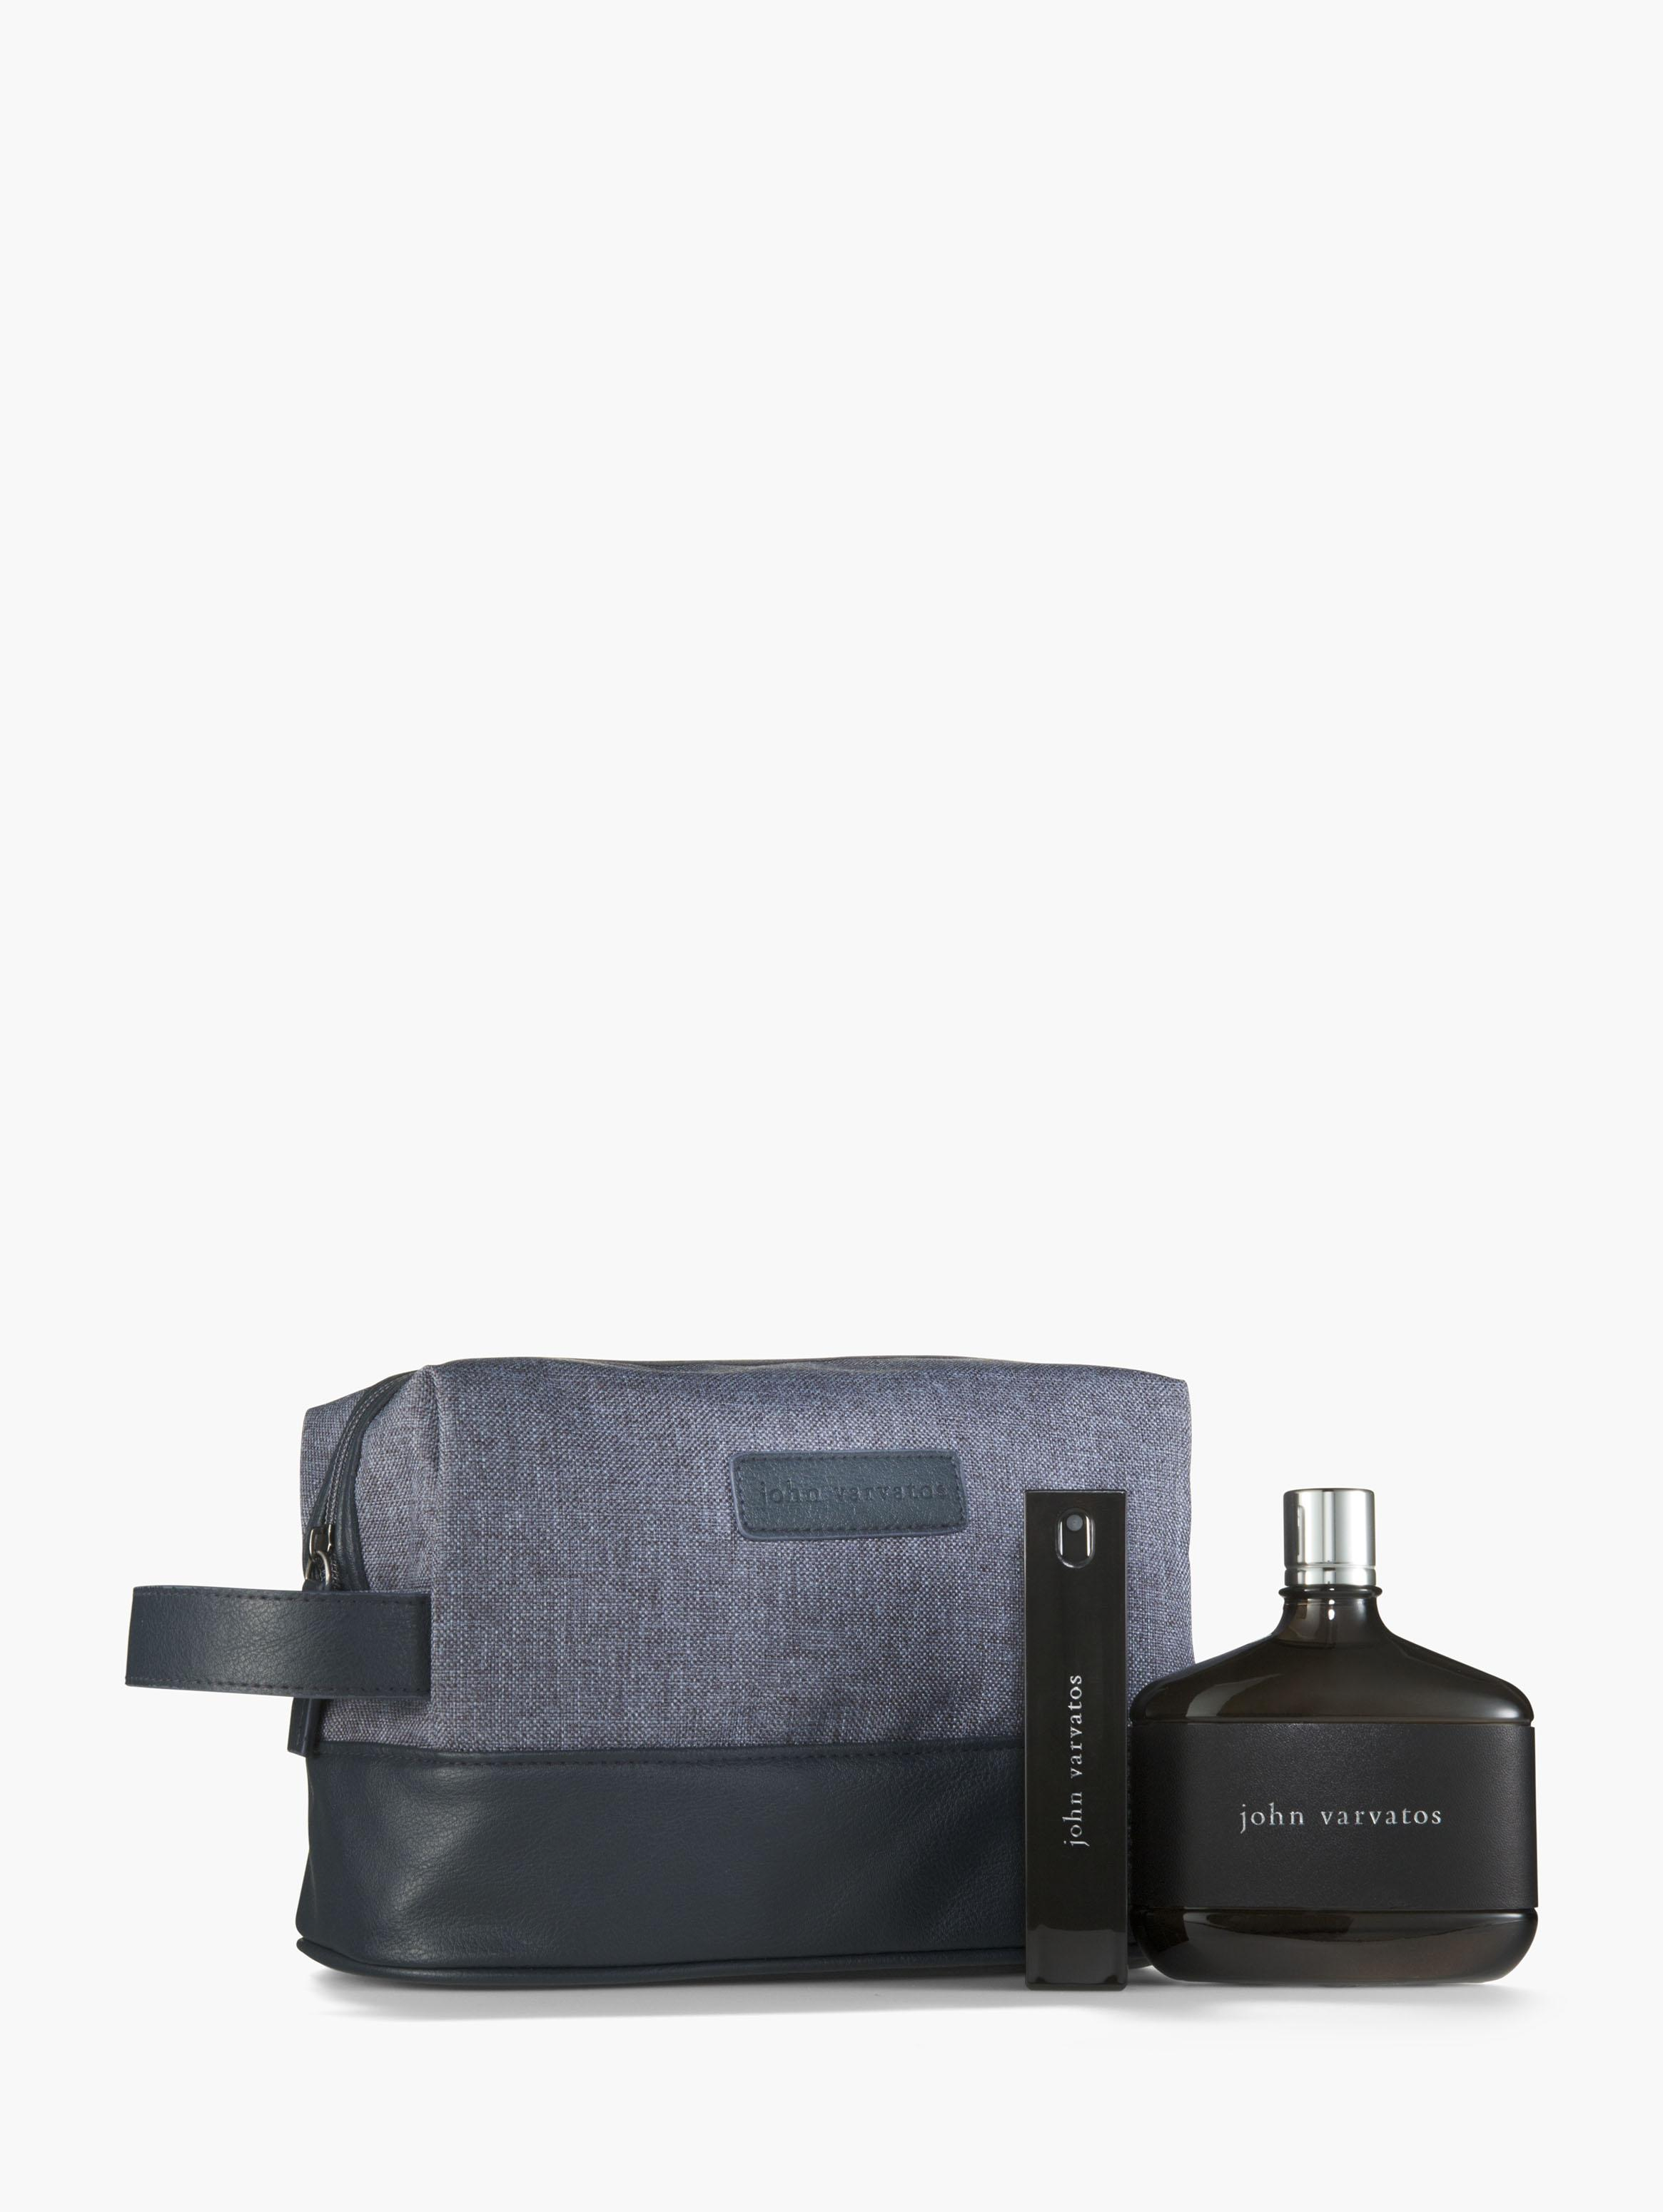 John Varvatos 4.2oz Dopp Kit Set